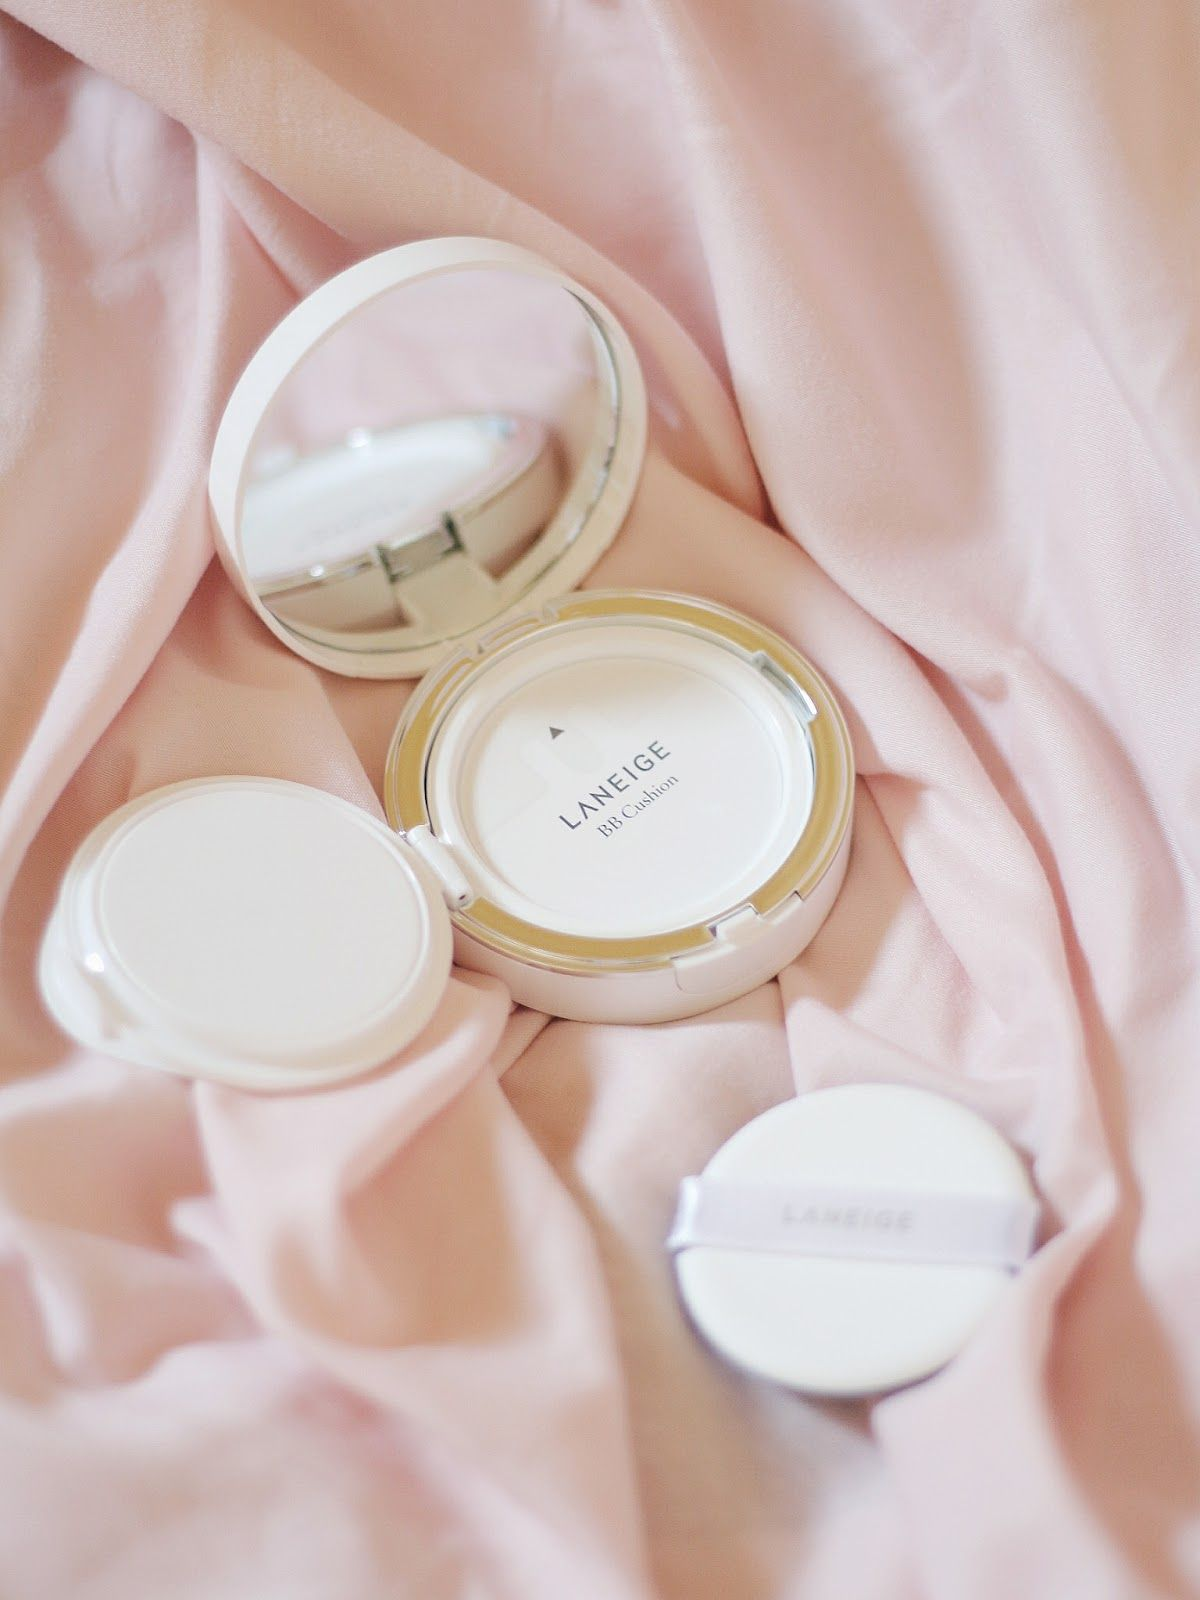 Laneige Pore Control Cushion Review In Sand Makeup In Manila Blog